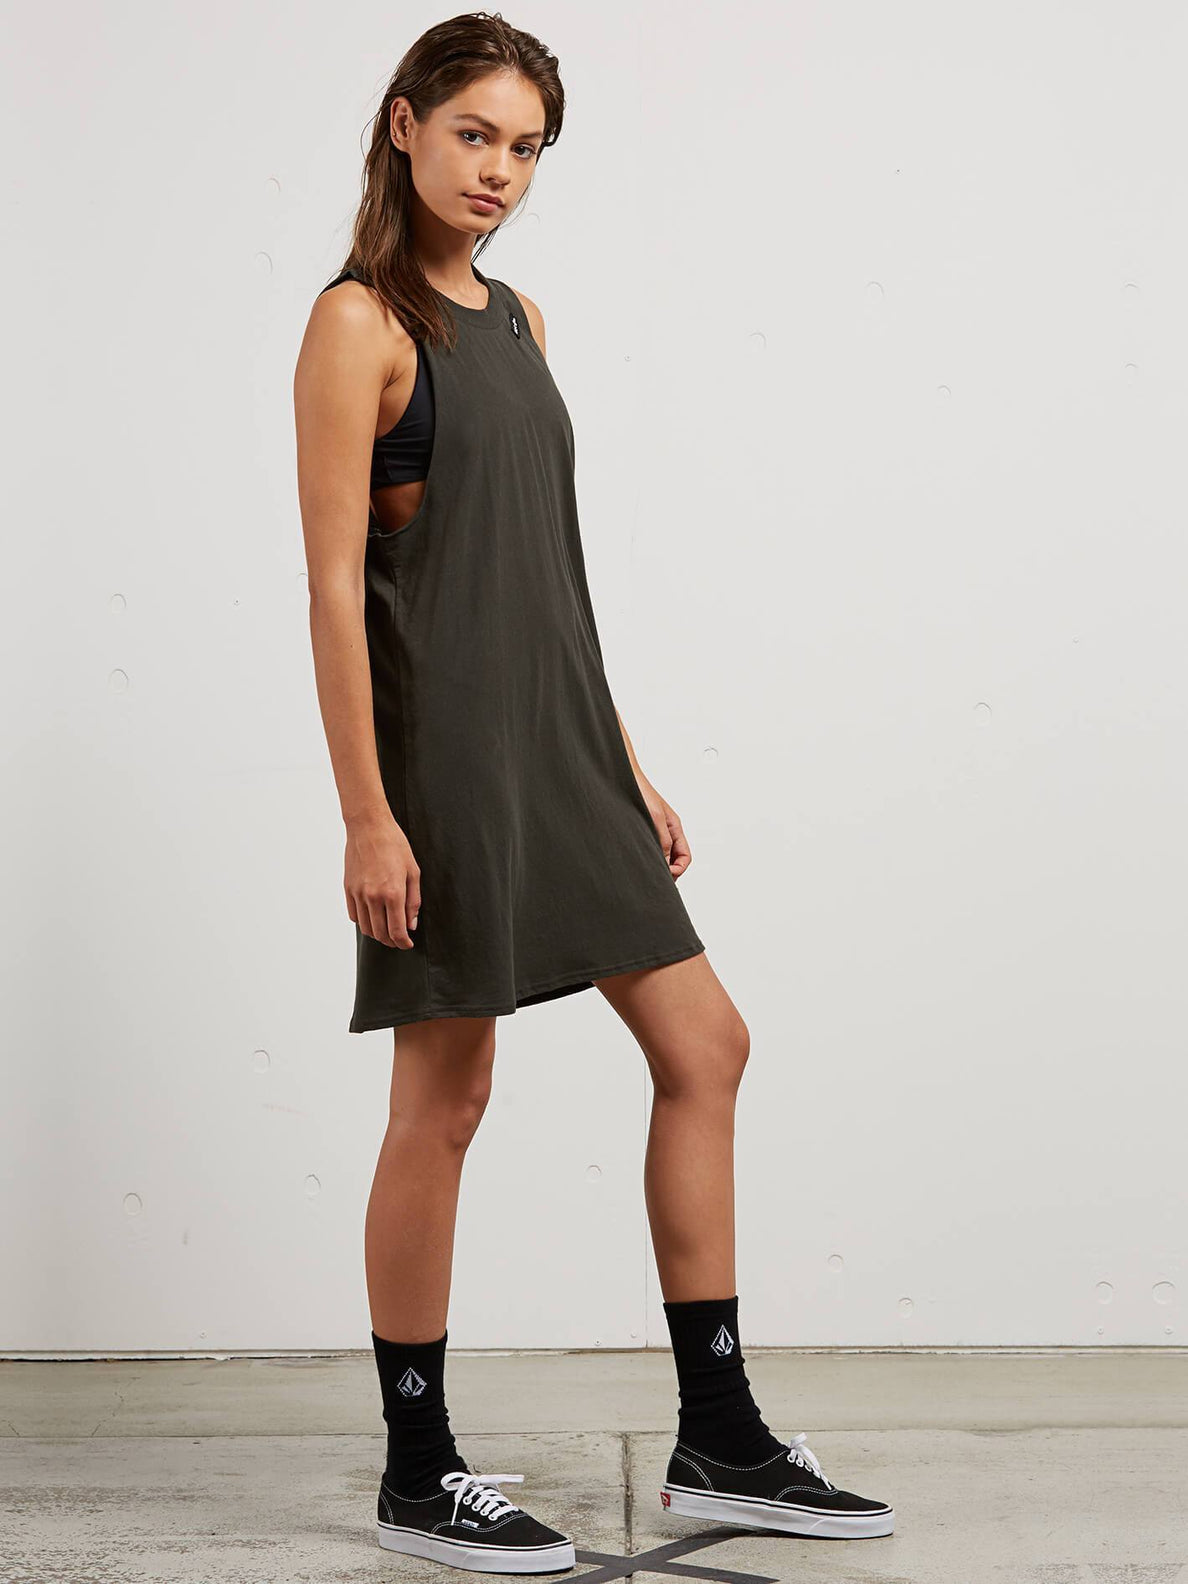 Day By Day Dress - Vintage Black